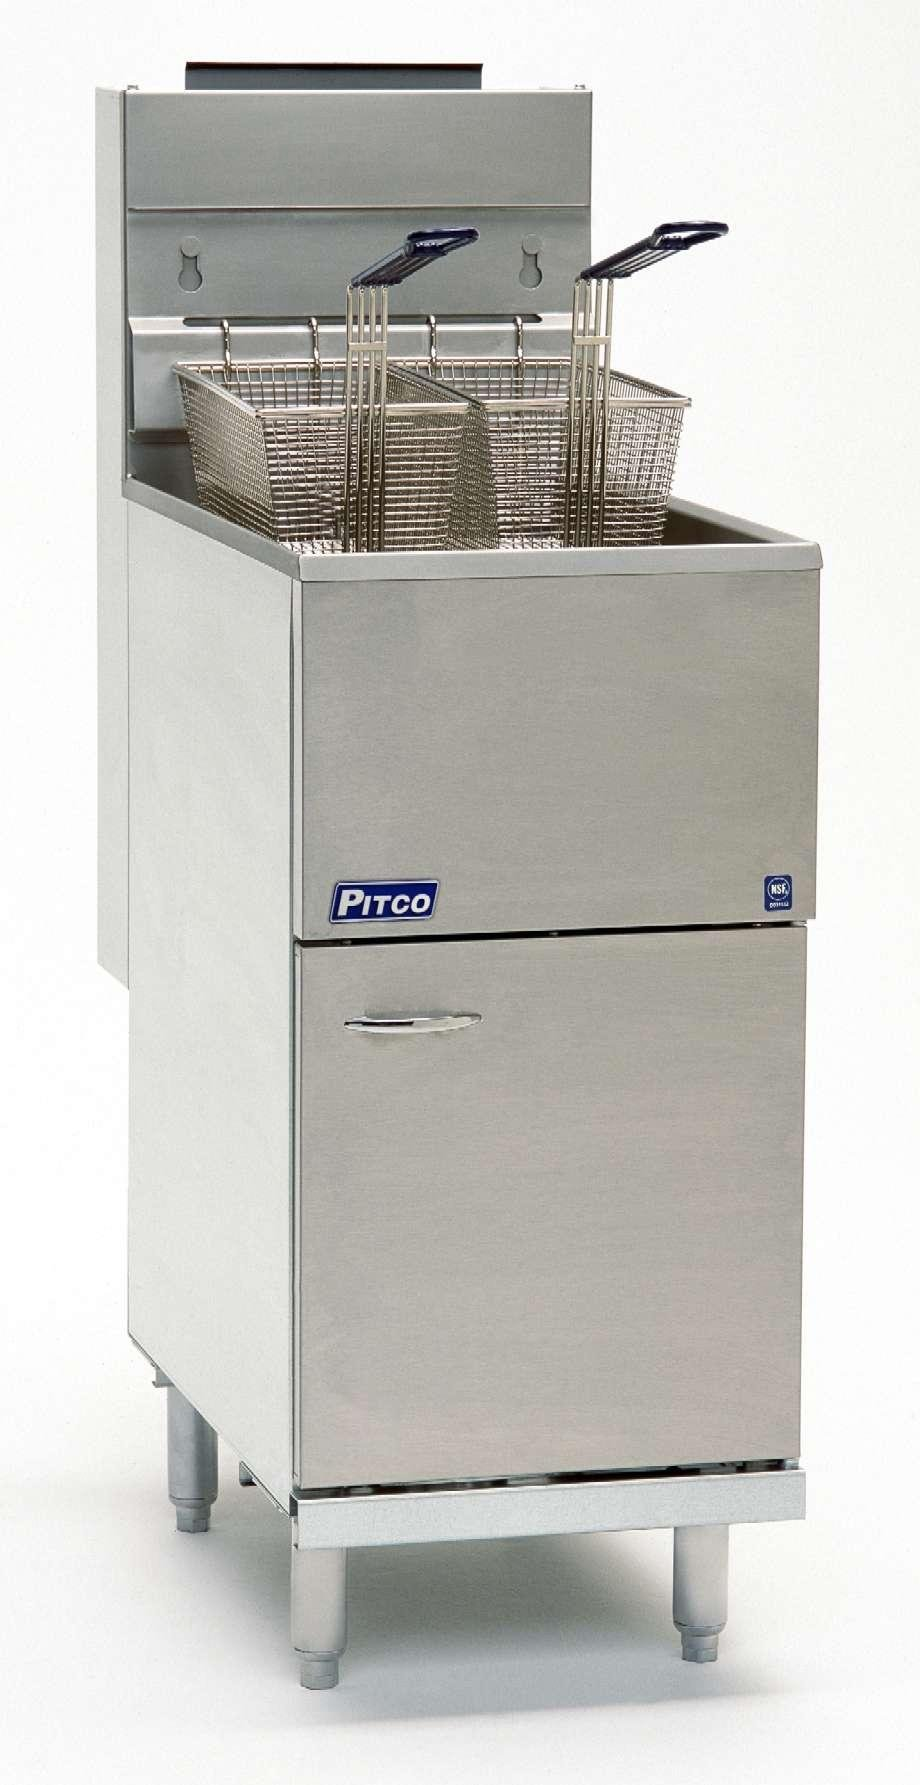 Countertop Ice Maker Ireland : ... CE35C/S Single Tank, Twin Basket Gas Fryer - 19L - Caterkwik Ireland